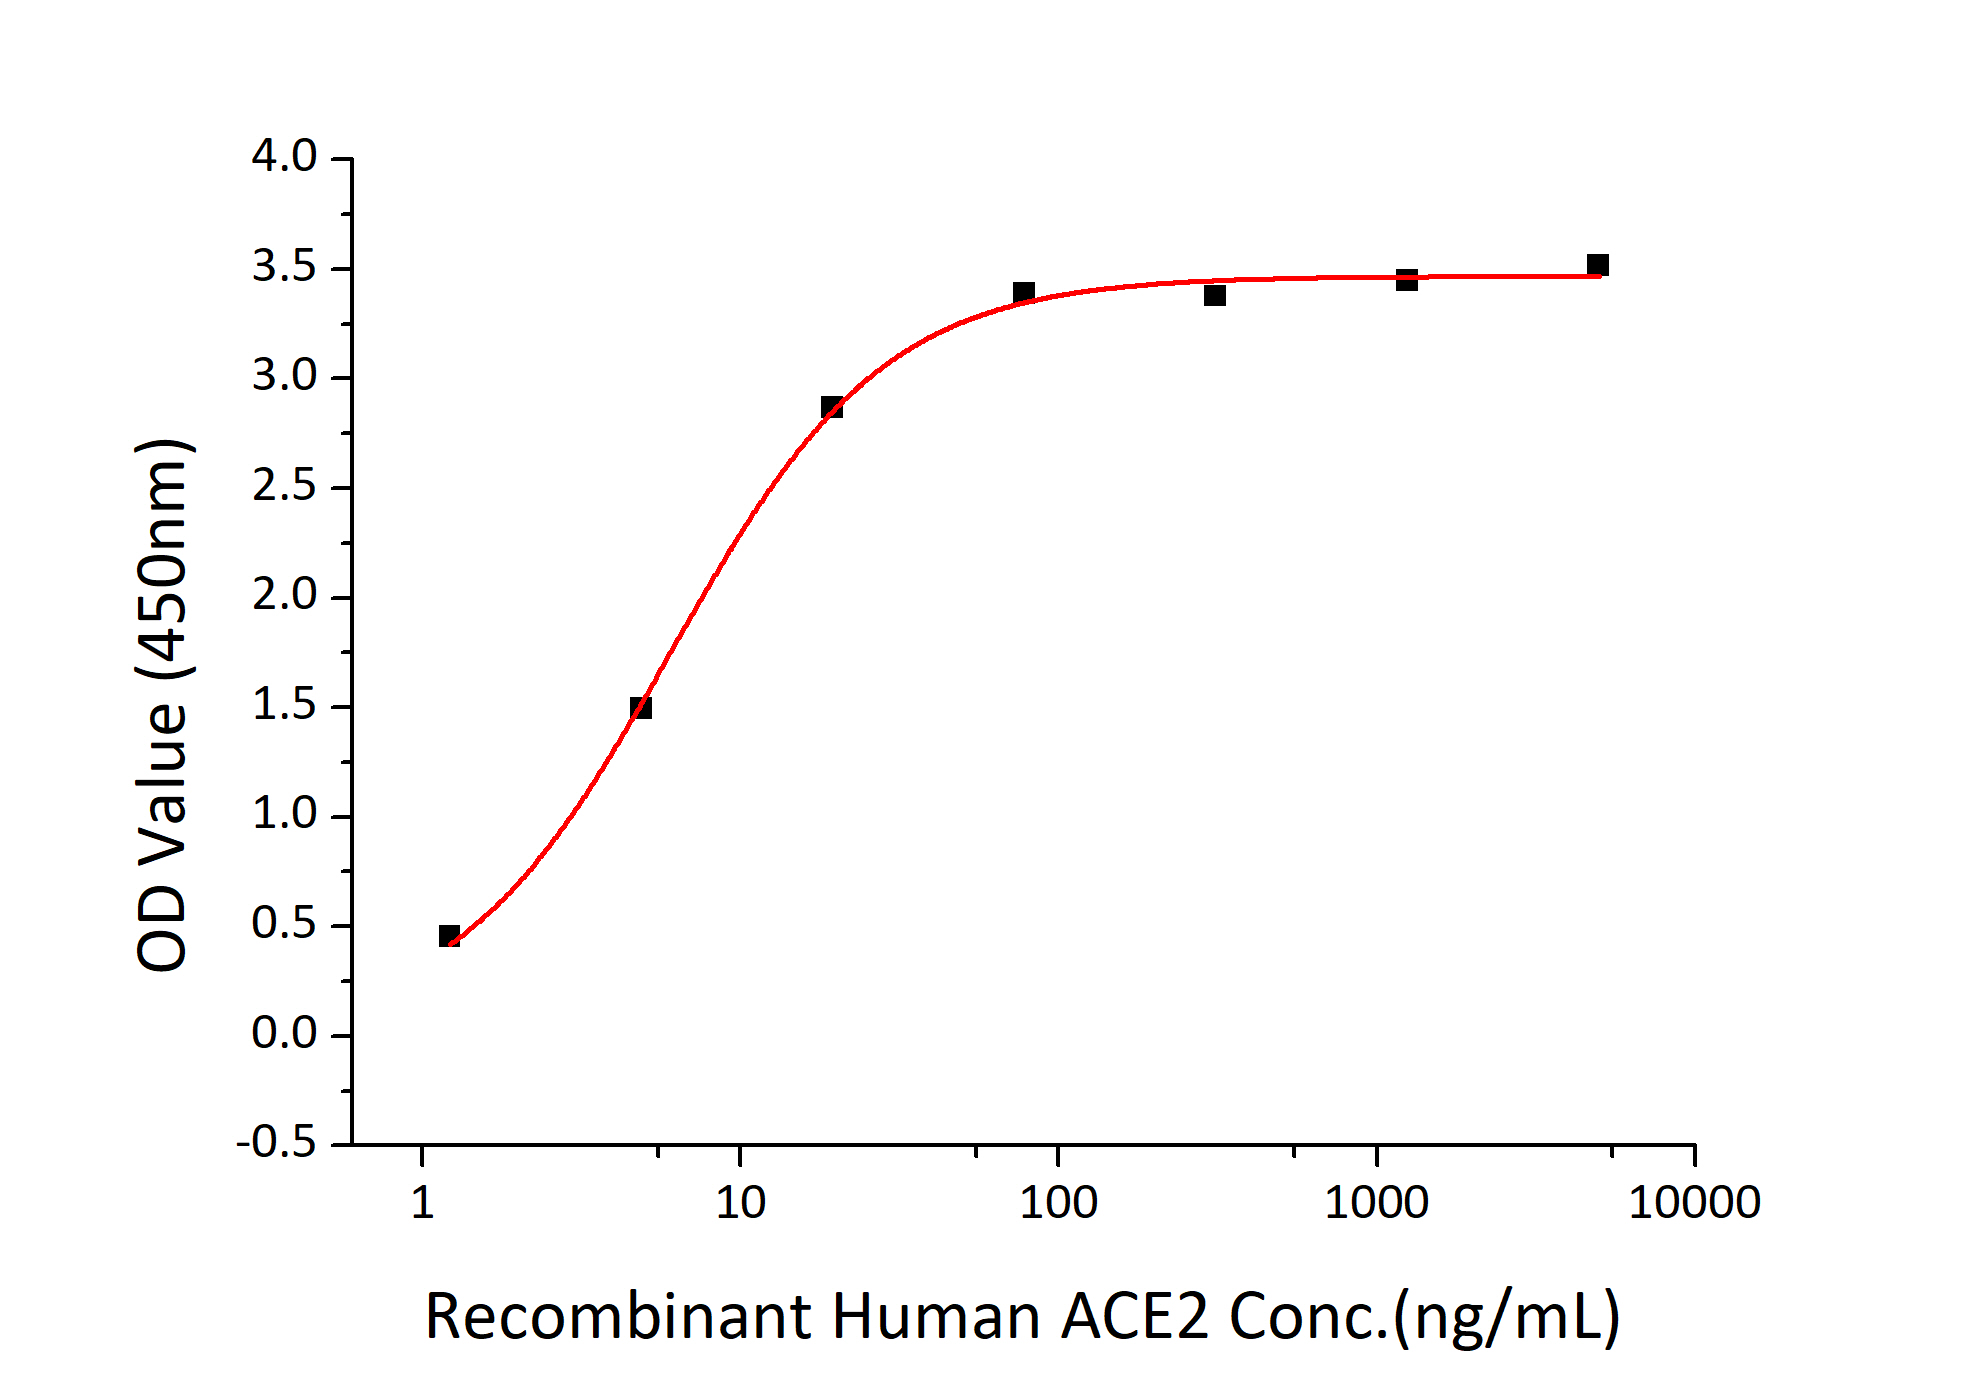 Fig 2 : Immobilized Recombinant 2019-nCoV Spike RBD-6His at 2μg/mL (100 μL/well) can bind Recombinant Human ACE2-Fc, the EC50 of ACE2-Fc is 4-6 ng/mL.